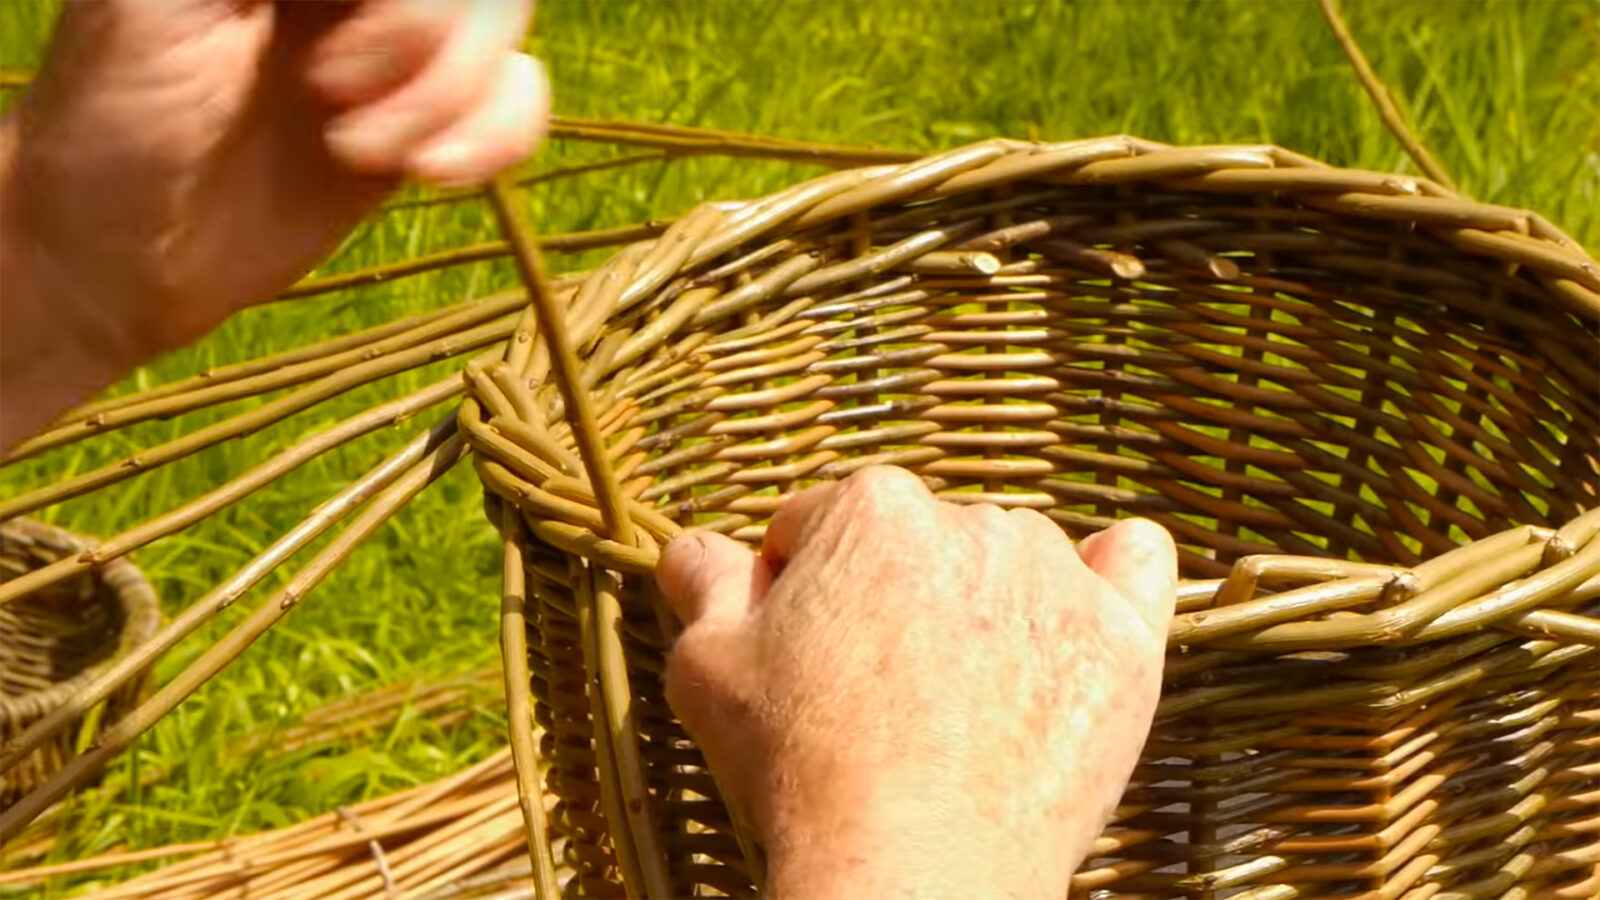 Making a traditional willow basket